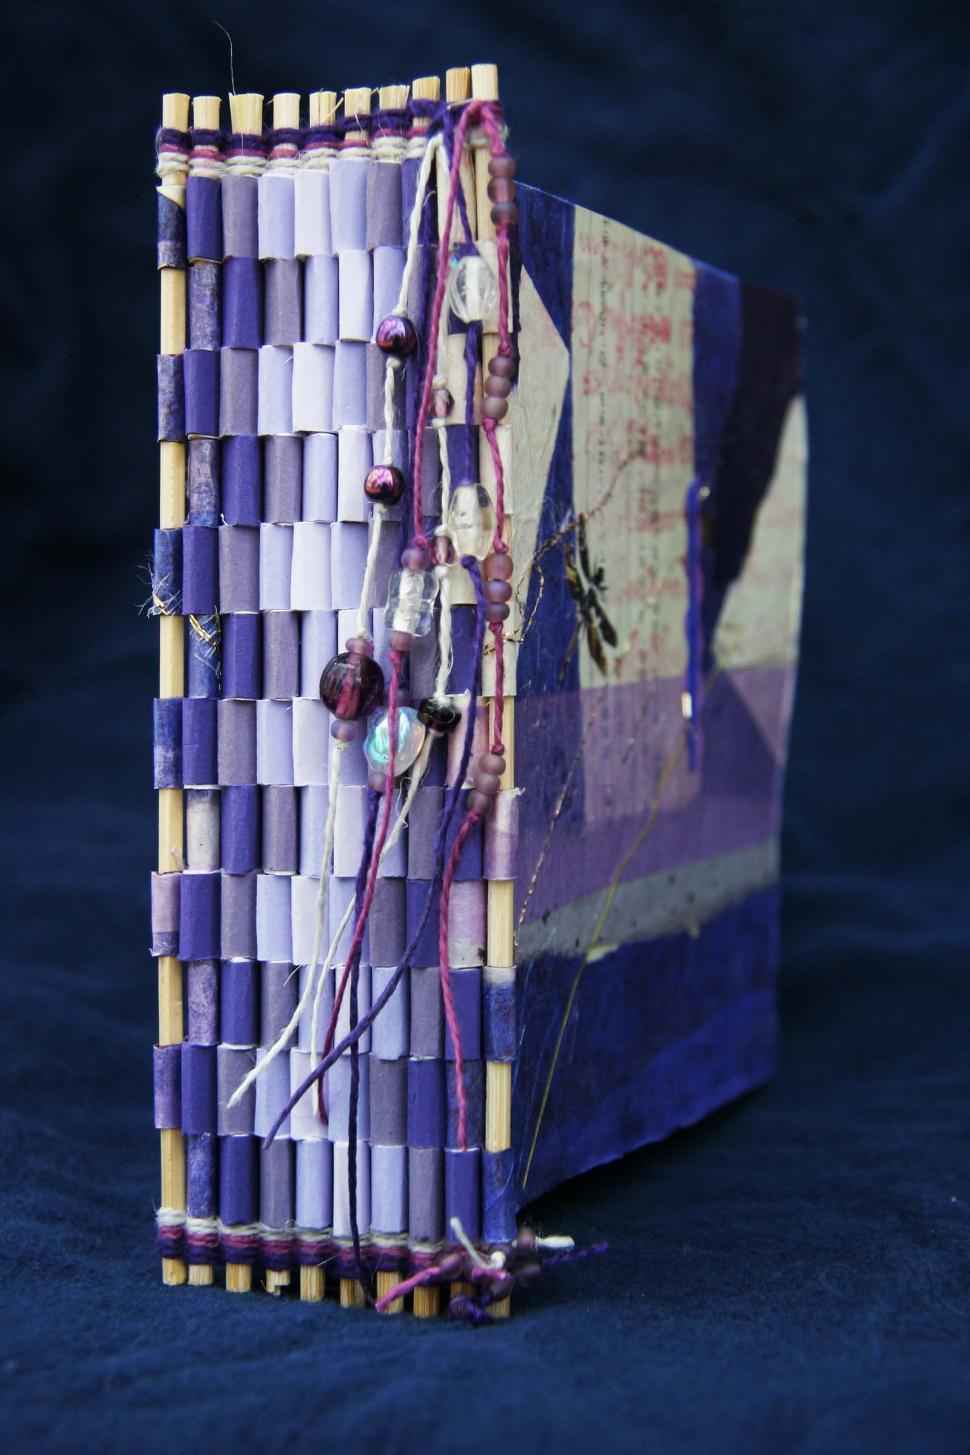 Download Free Stock HD Photo of Hand made book spine Online